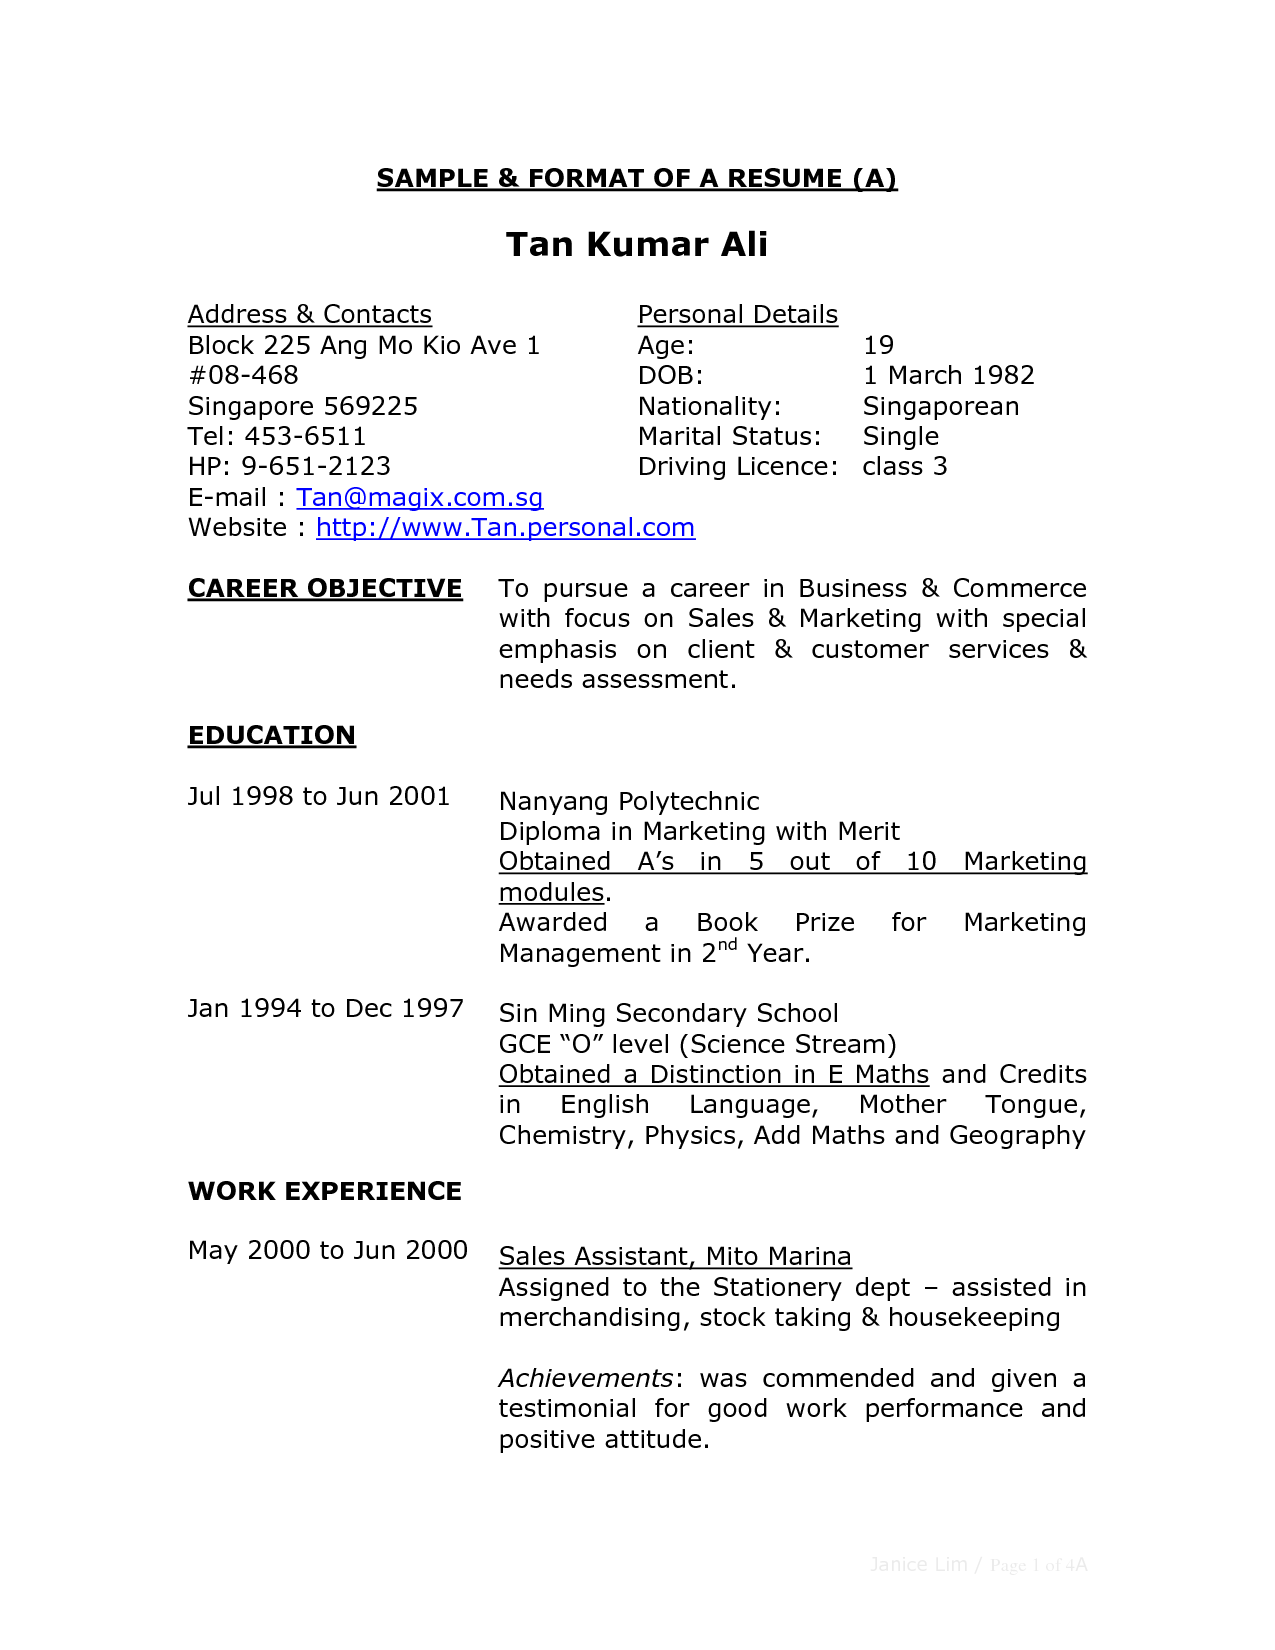 Full Block Resume Format Business Letter Examples Resumes Free